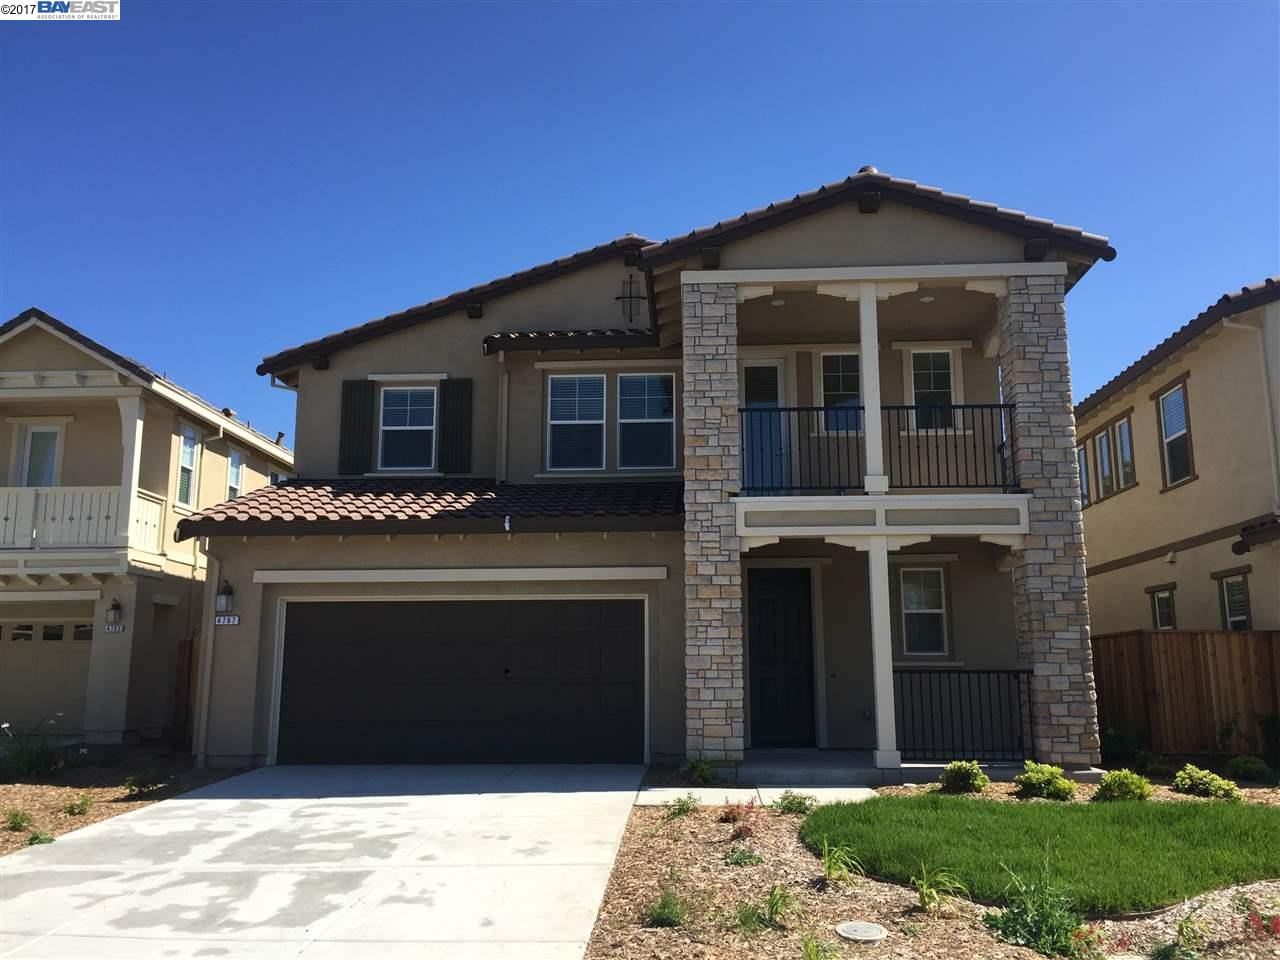 Single Family Home for Rent at 4767 HAWKINS Street Antioch, California 94531 United States